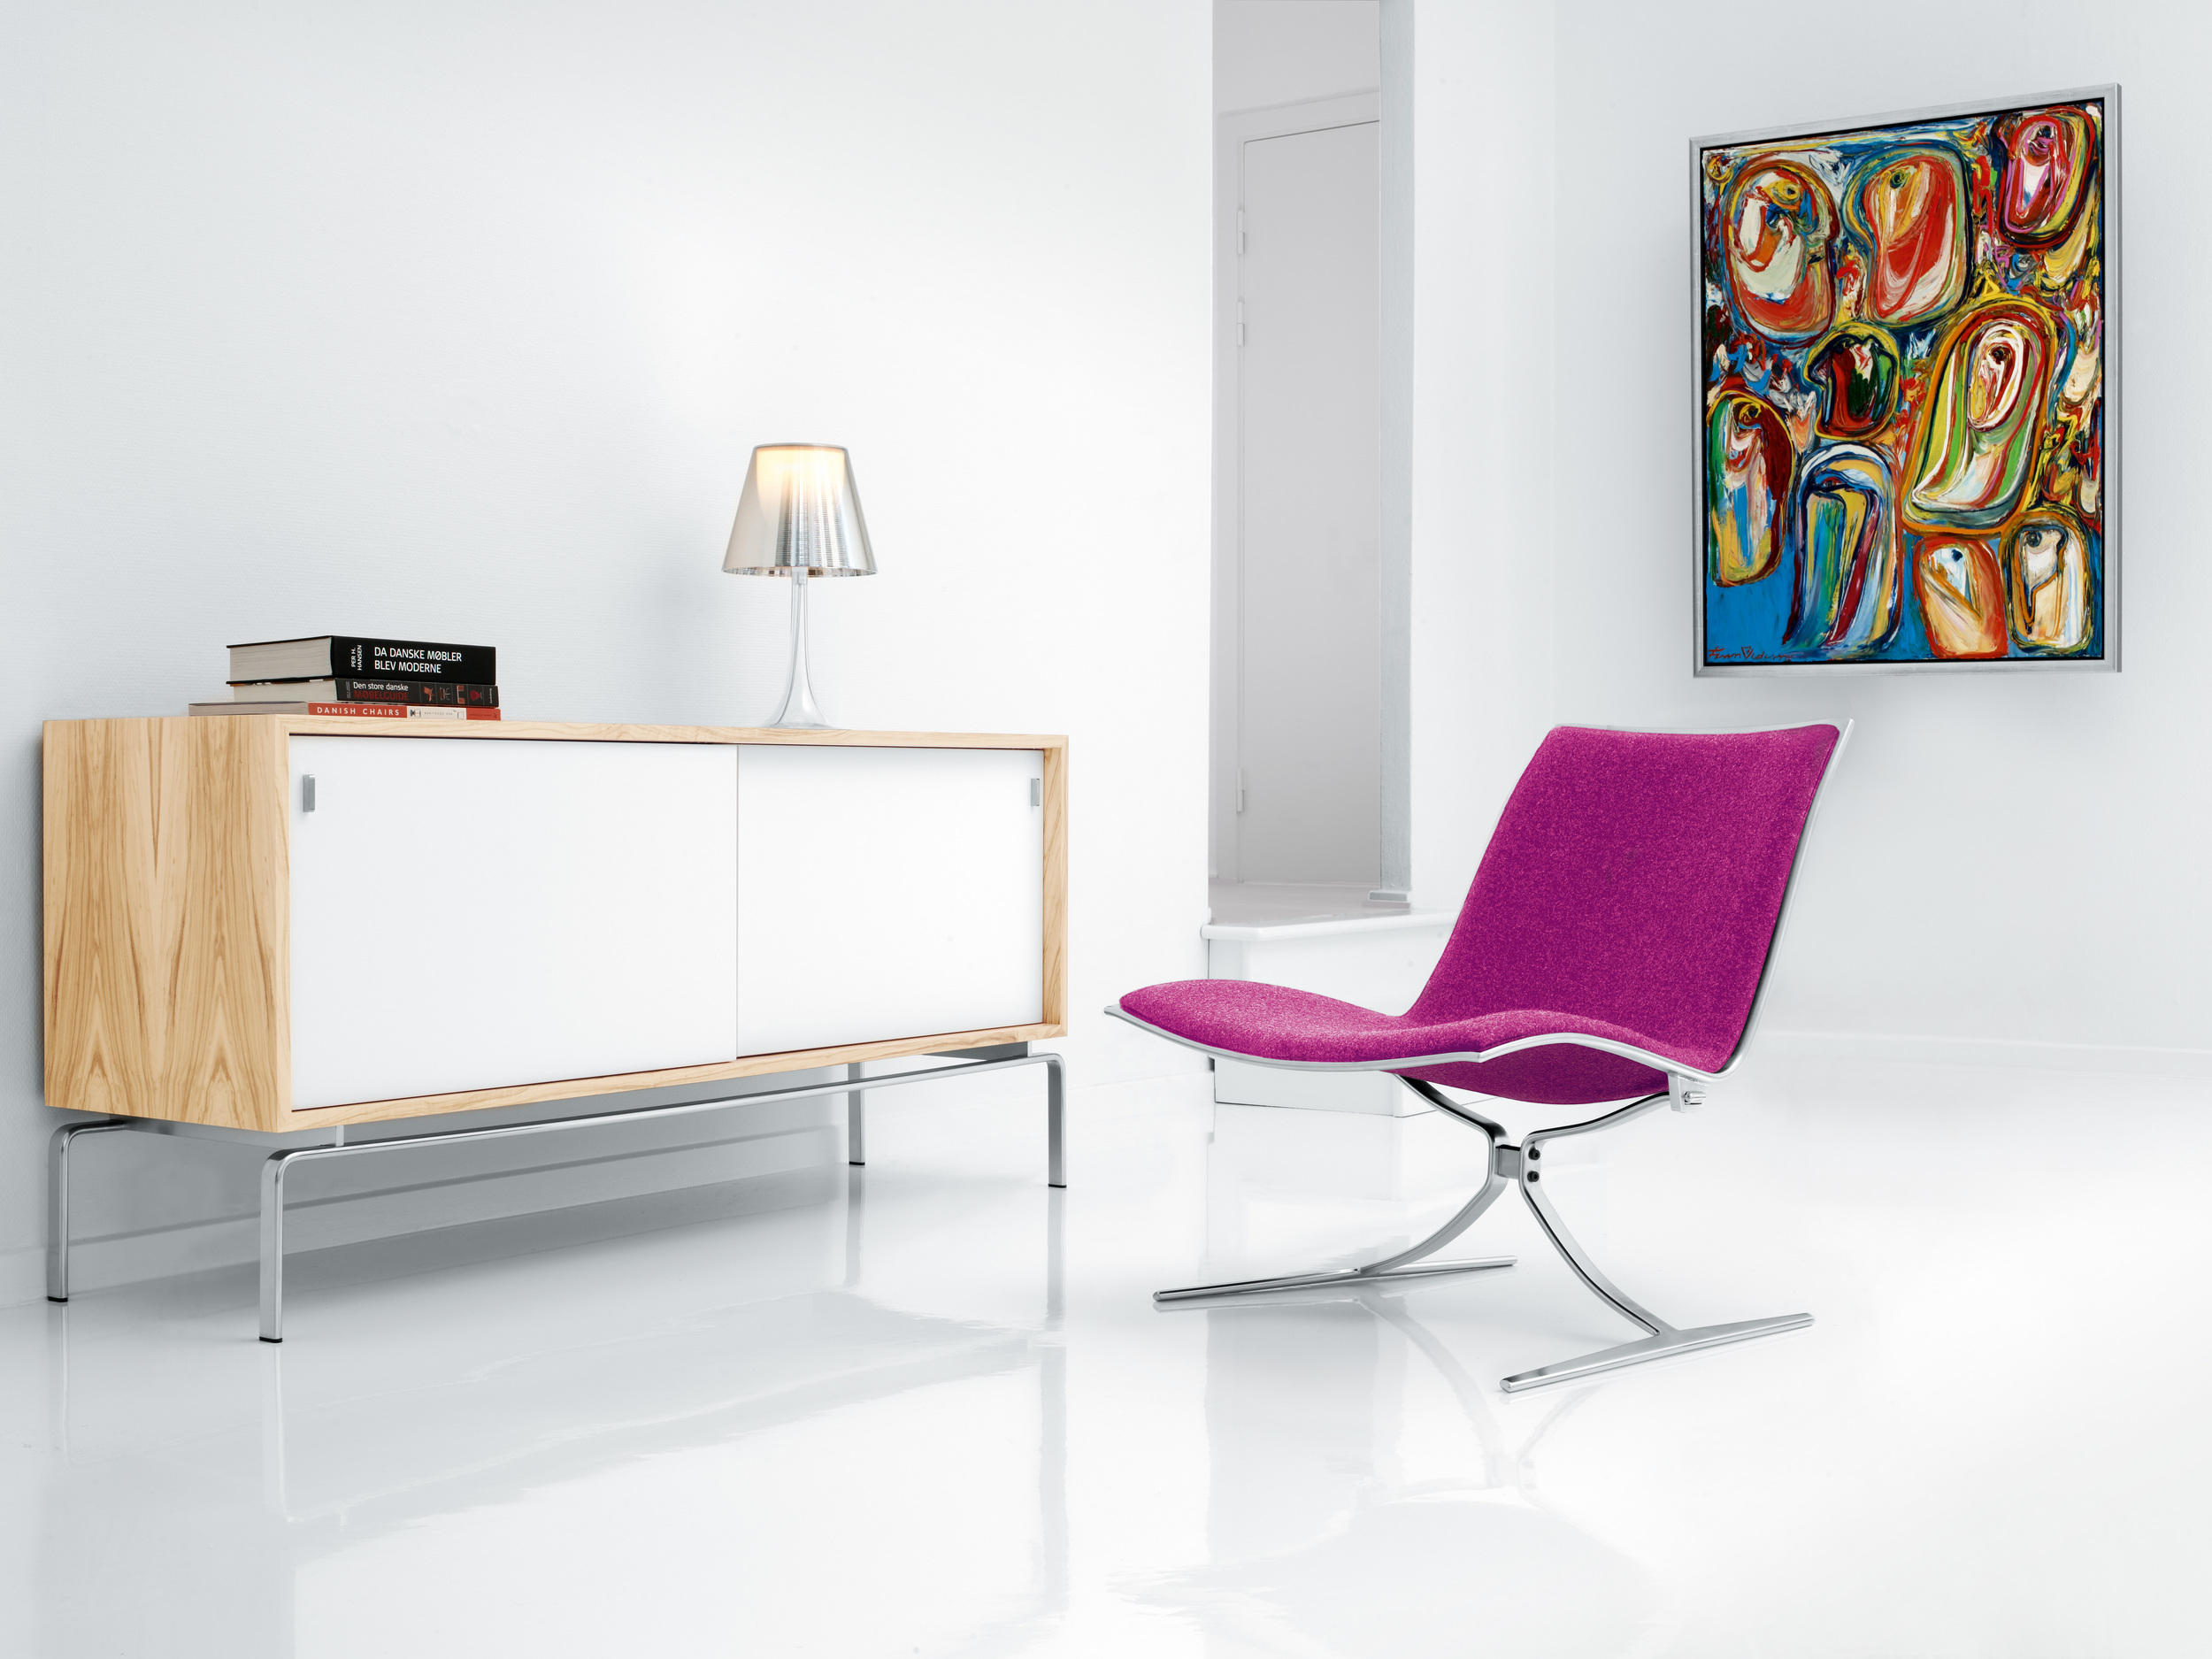 Skater Chair and FK Console by Lange Production.